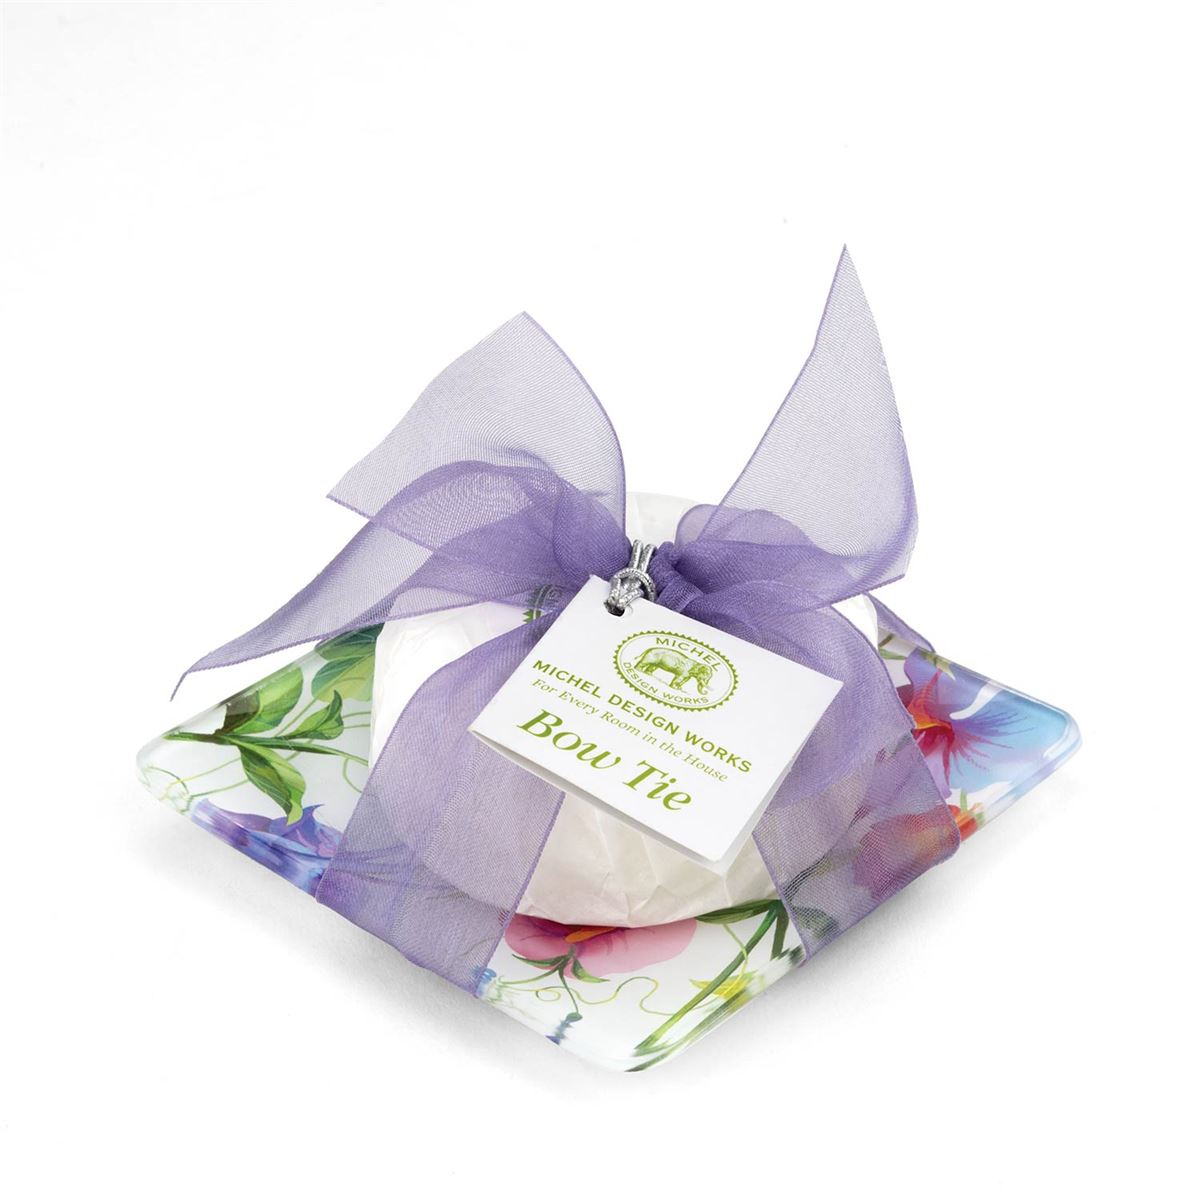 Bow Tie Soap Dish Set - Sweet Pea Collection